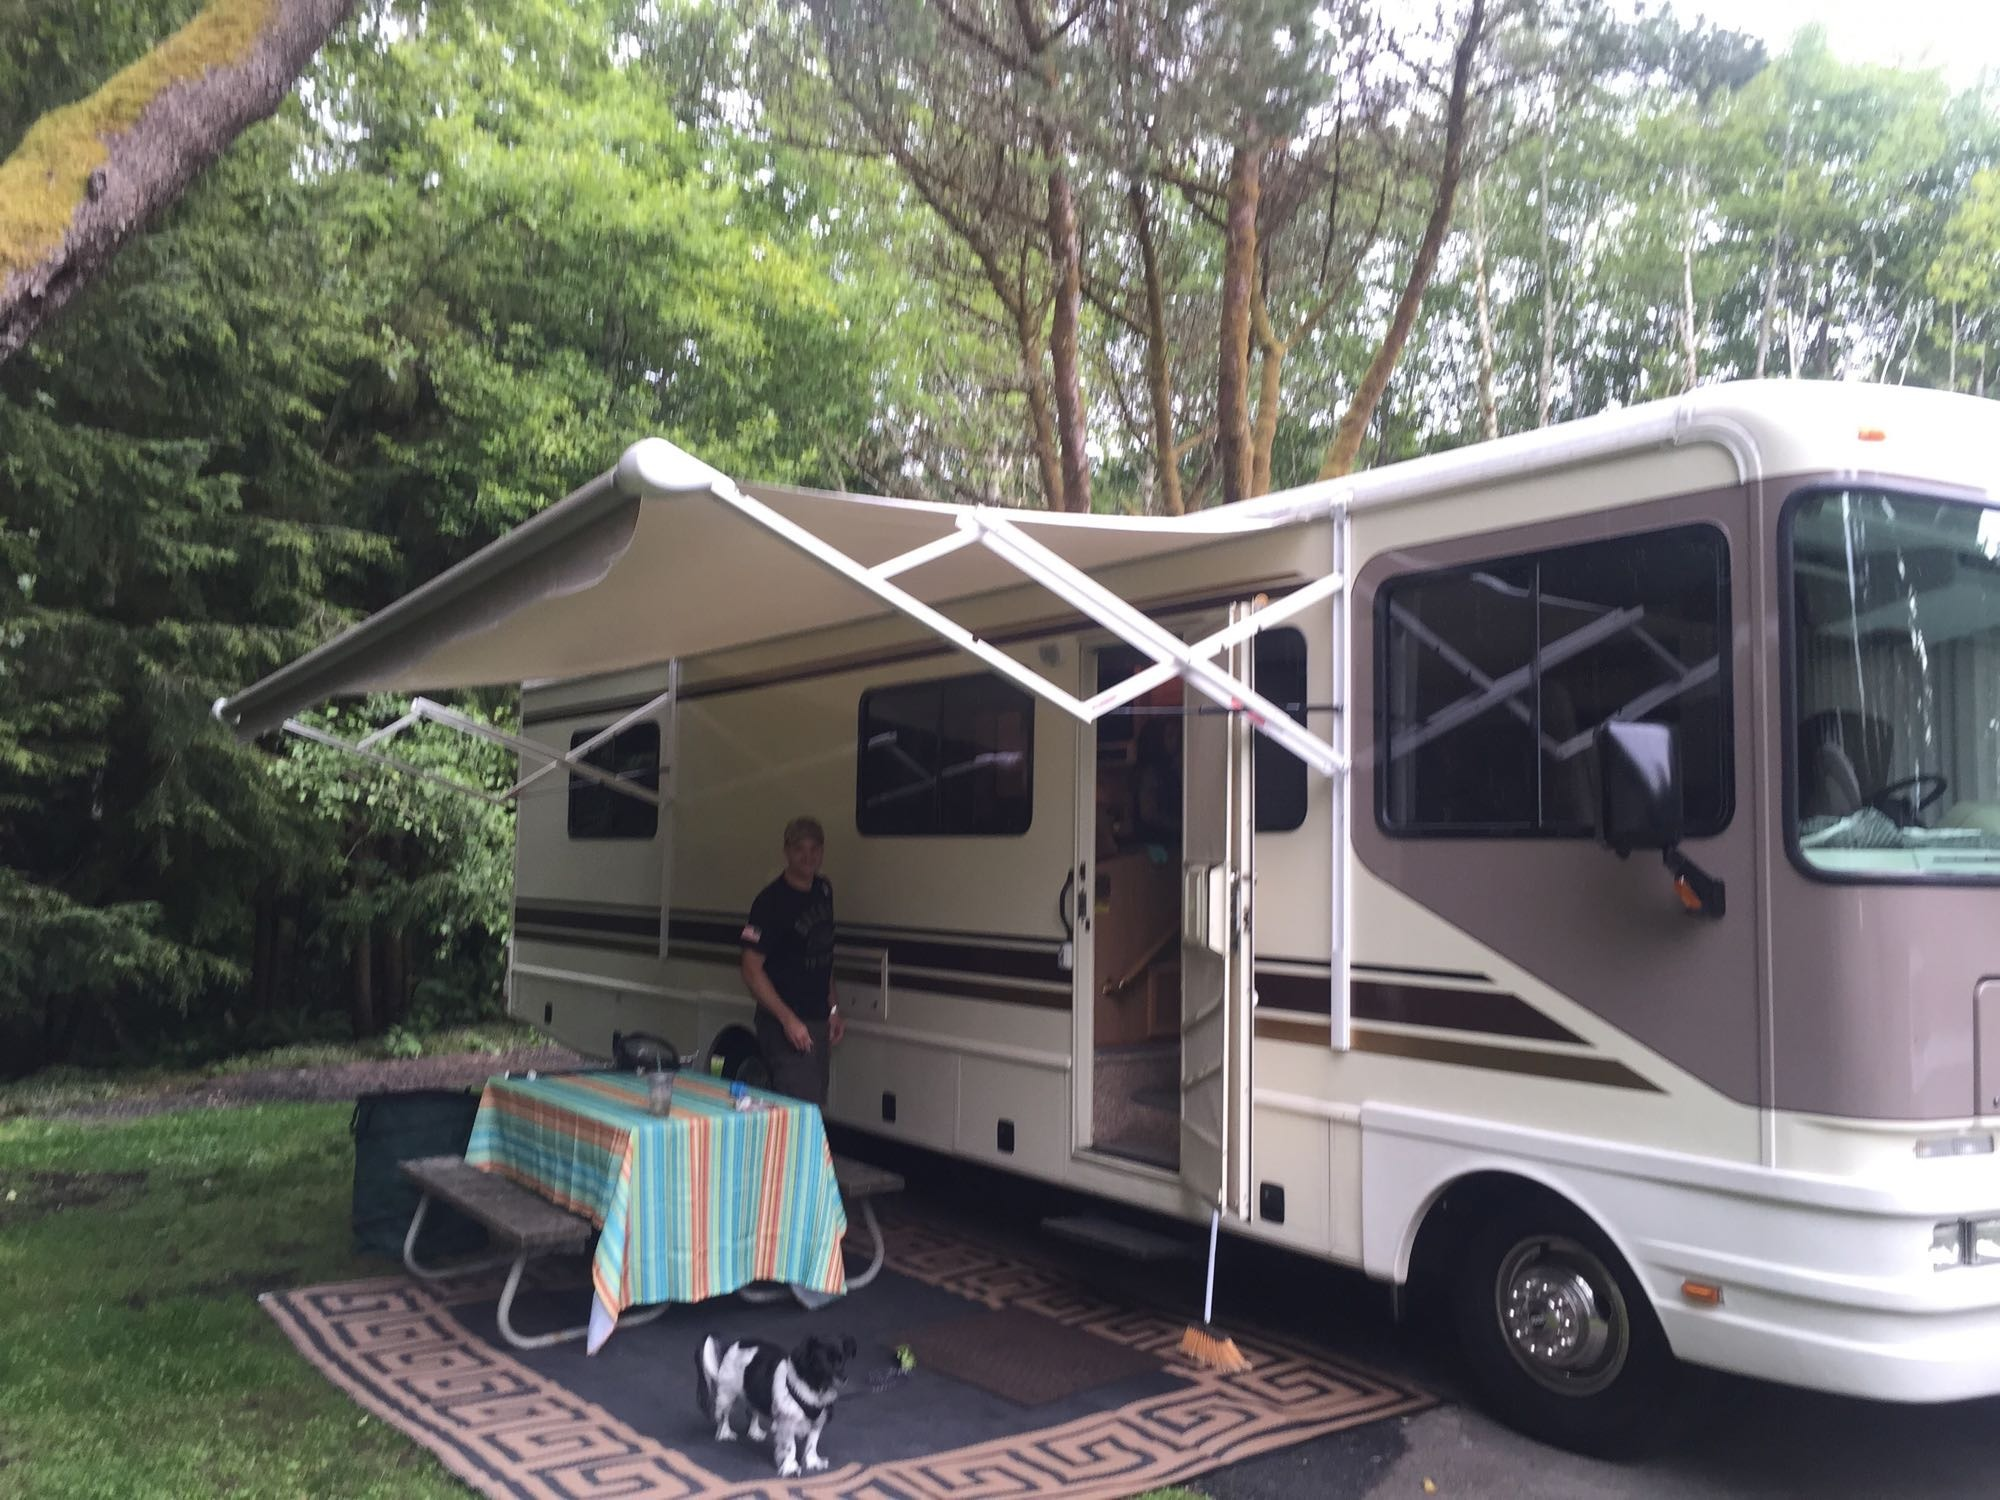 Nice large power awning (Sammy wanted in the picture). Fleetwood 32S 1997